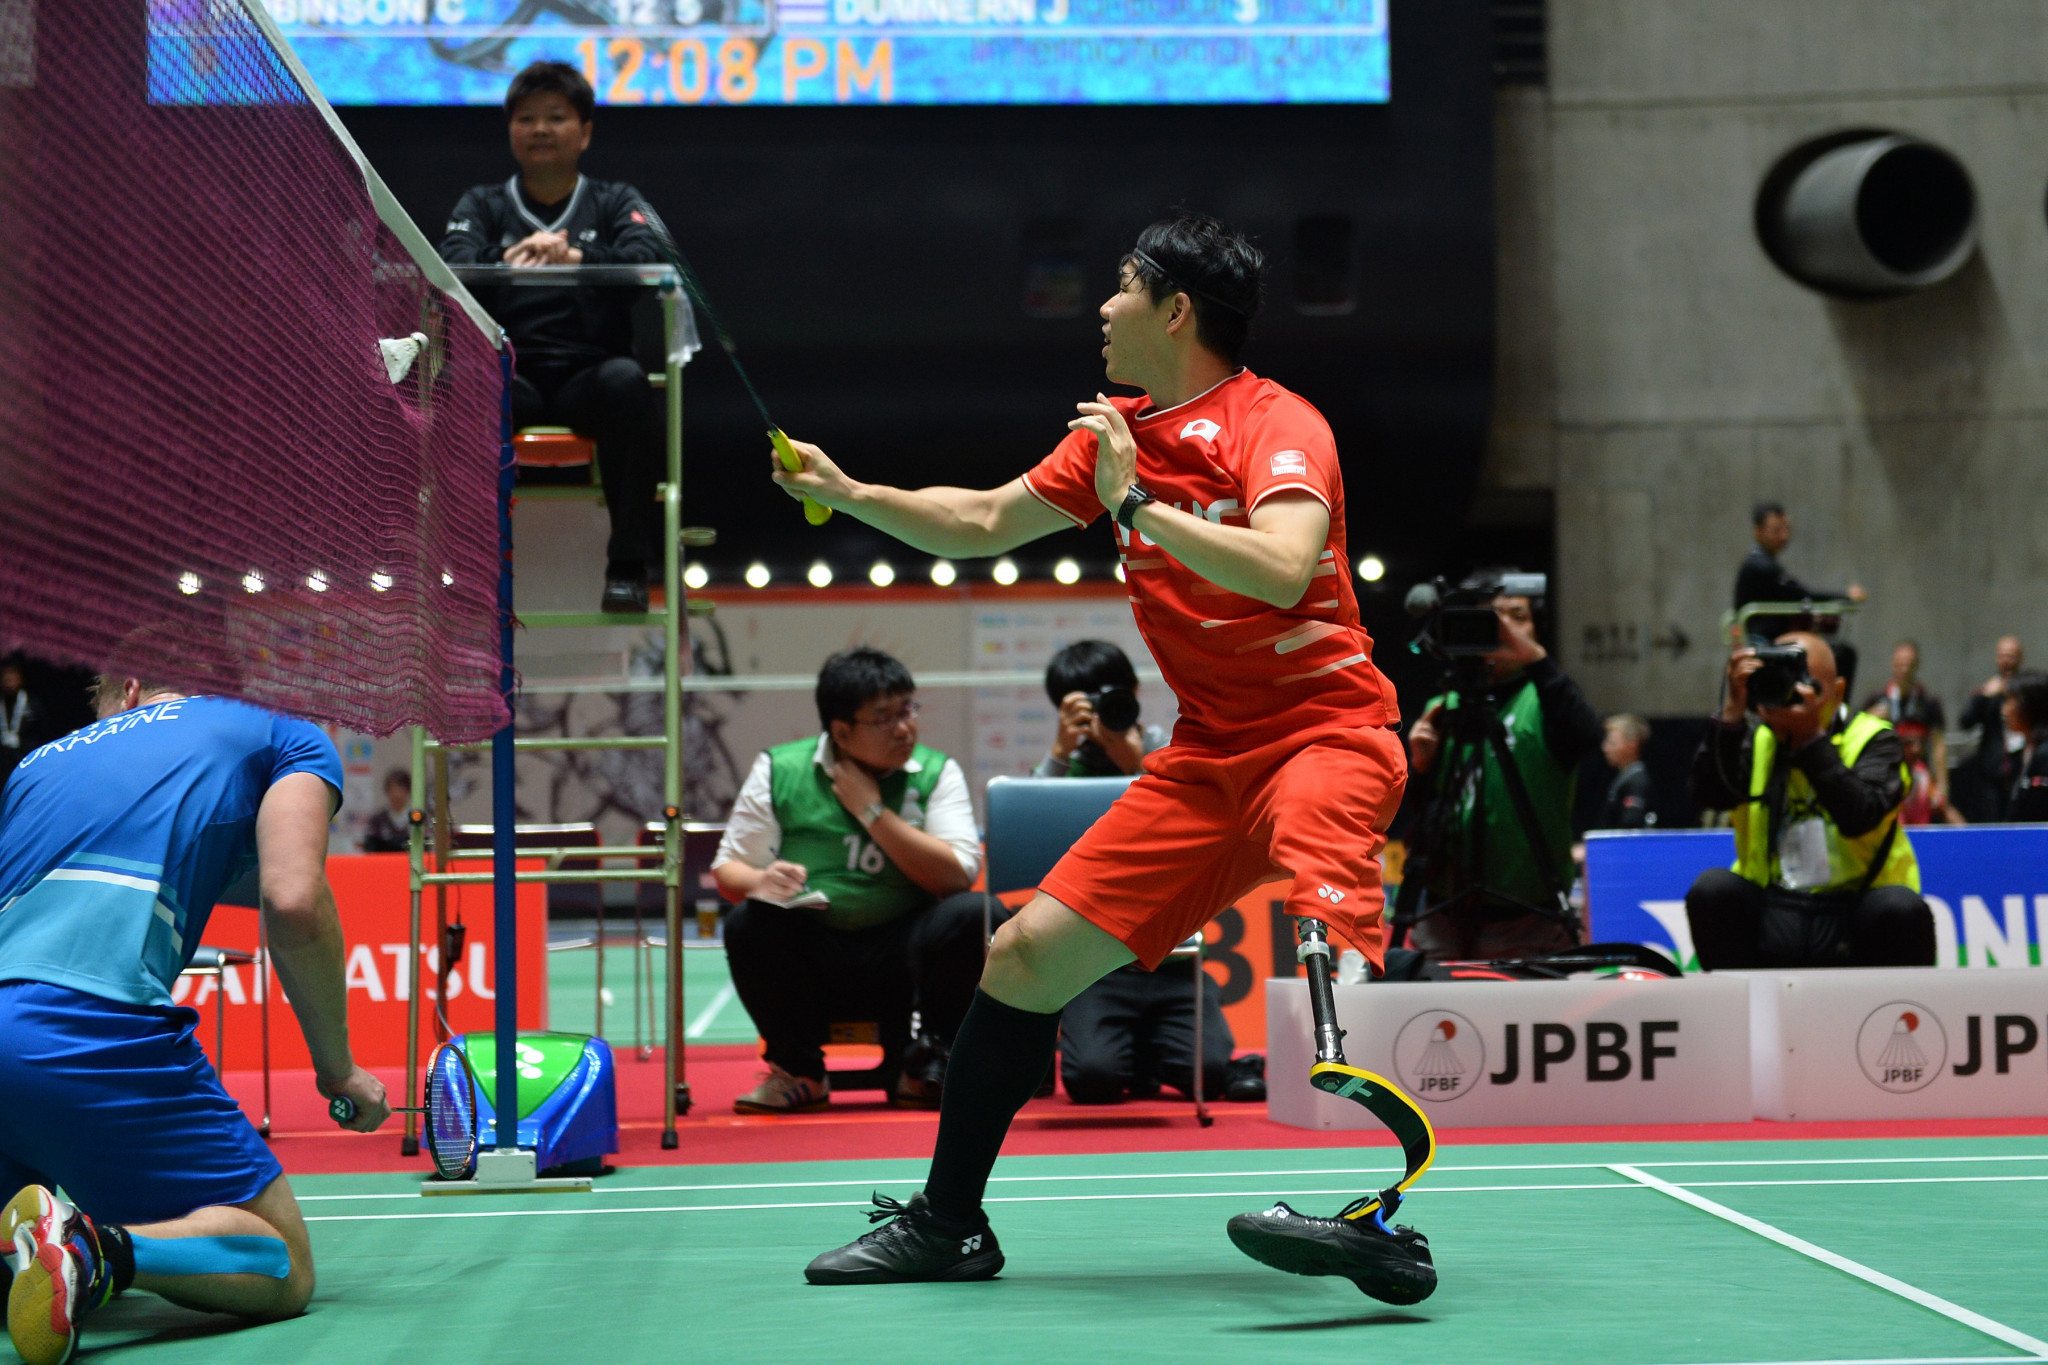 Bhagat to meet Bethell in Tokyo 2020 Para-badminton test event final